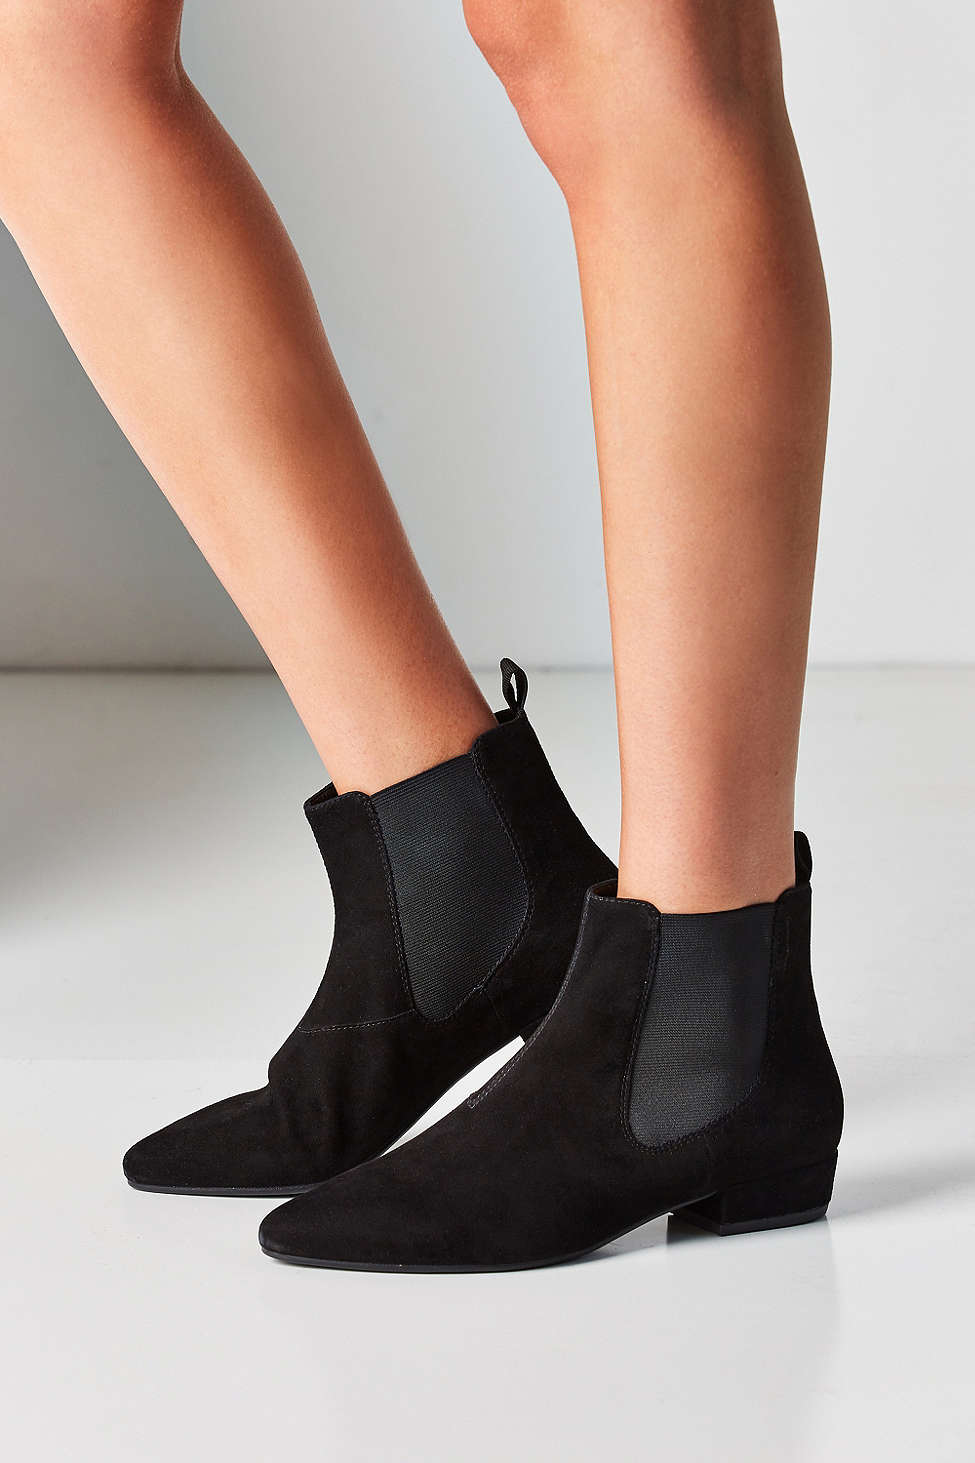 Yes, its bootie season! Chelsea boots are back once again this year so if you didn't invest in a pair last year, then you should definitely this year. This pair is my absolute favourite because its suede, which gives it a softer look allowing you to match it with a lot more outfits.